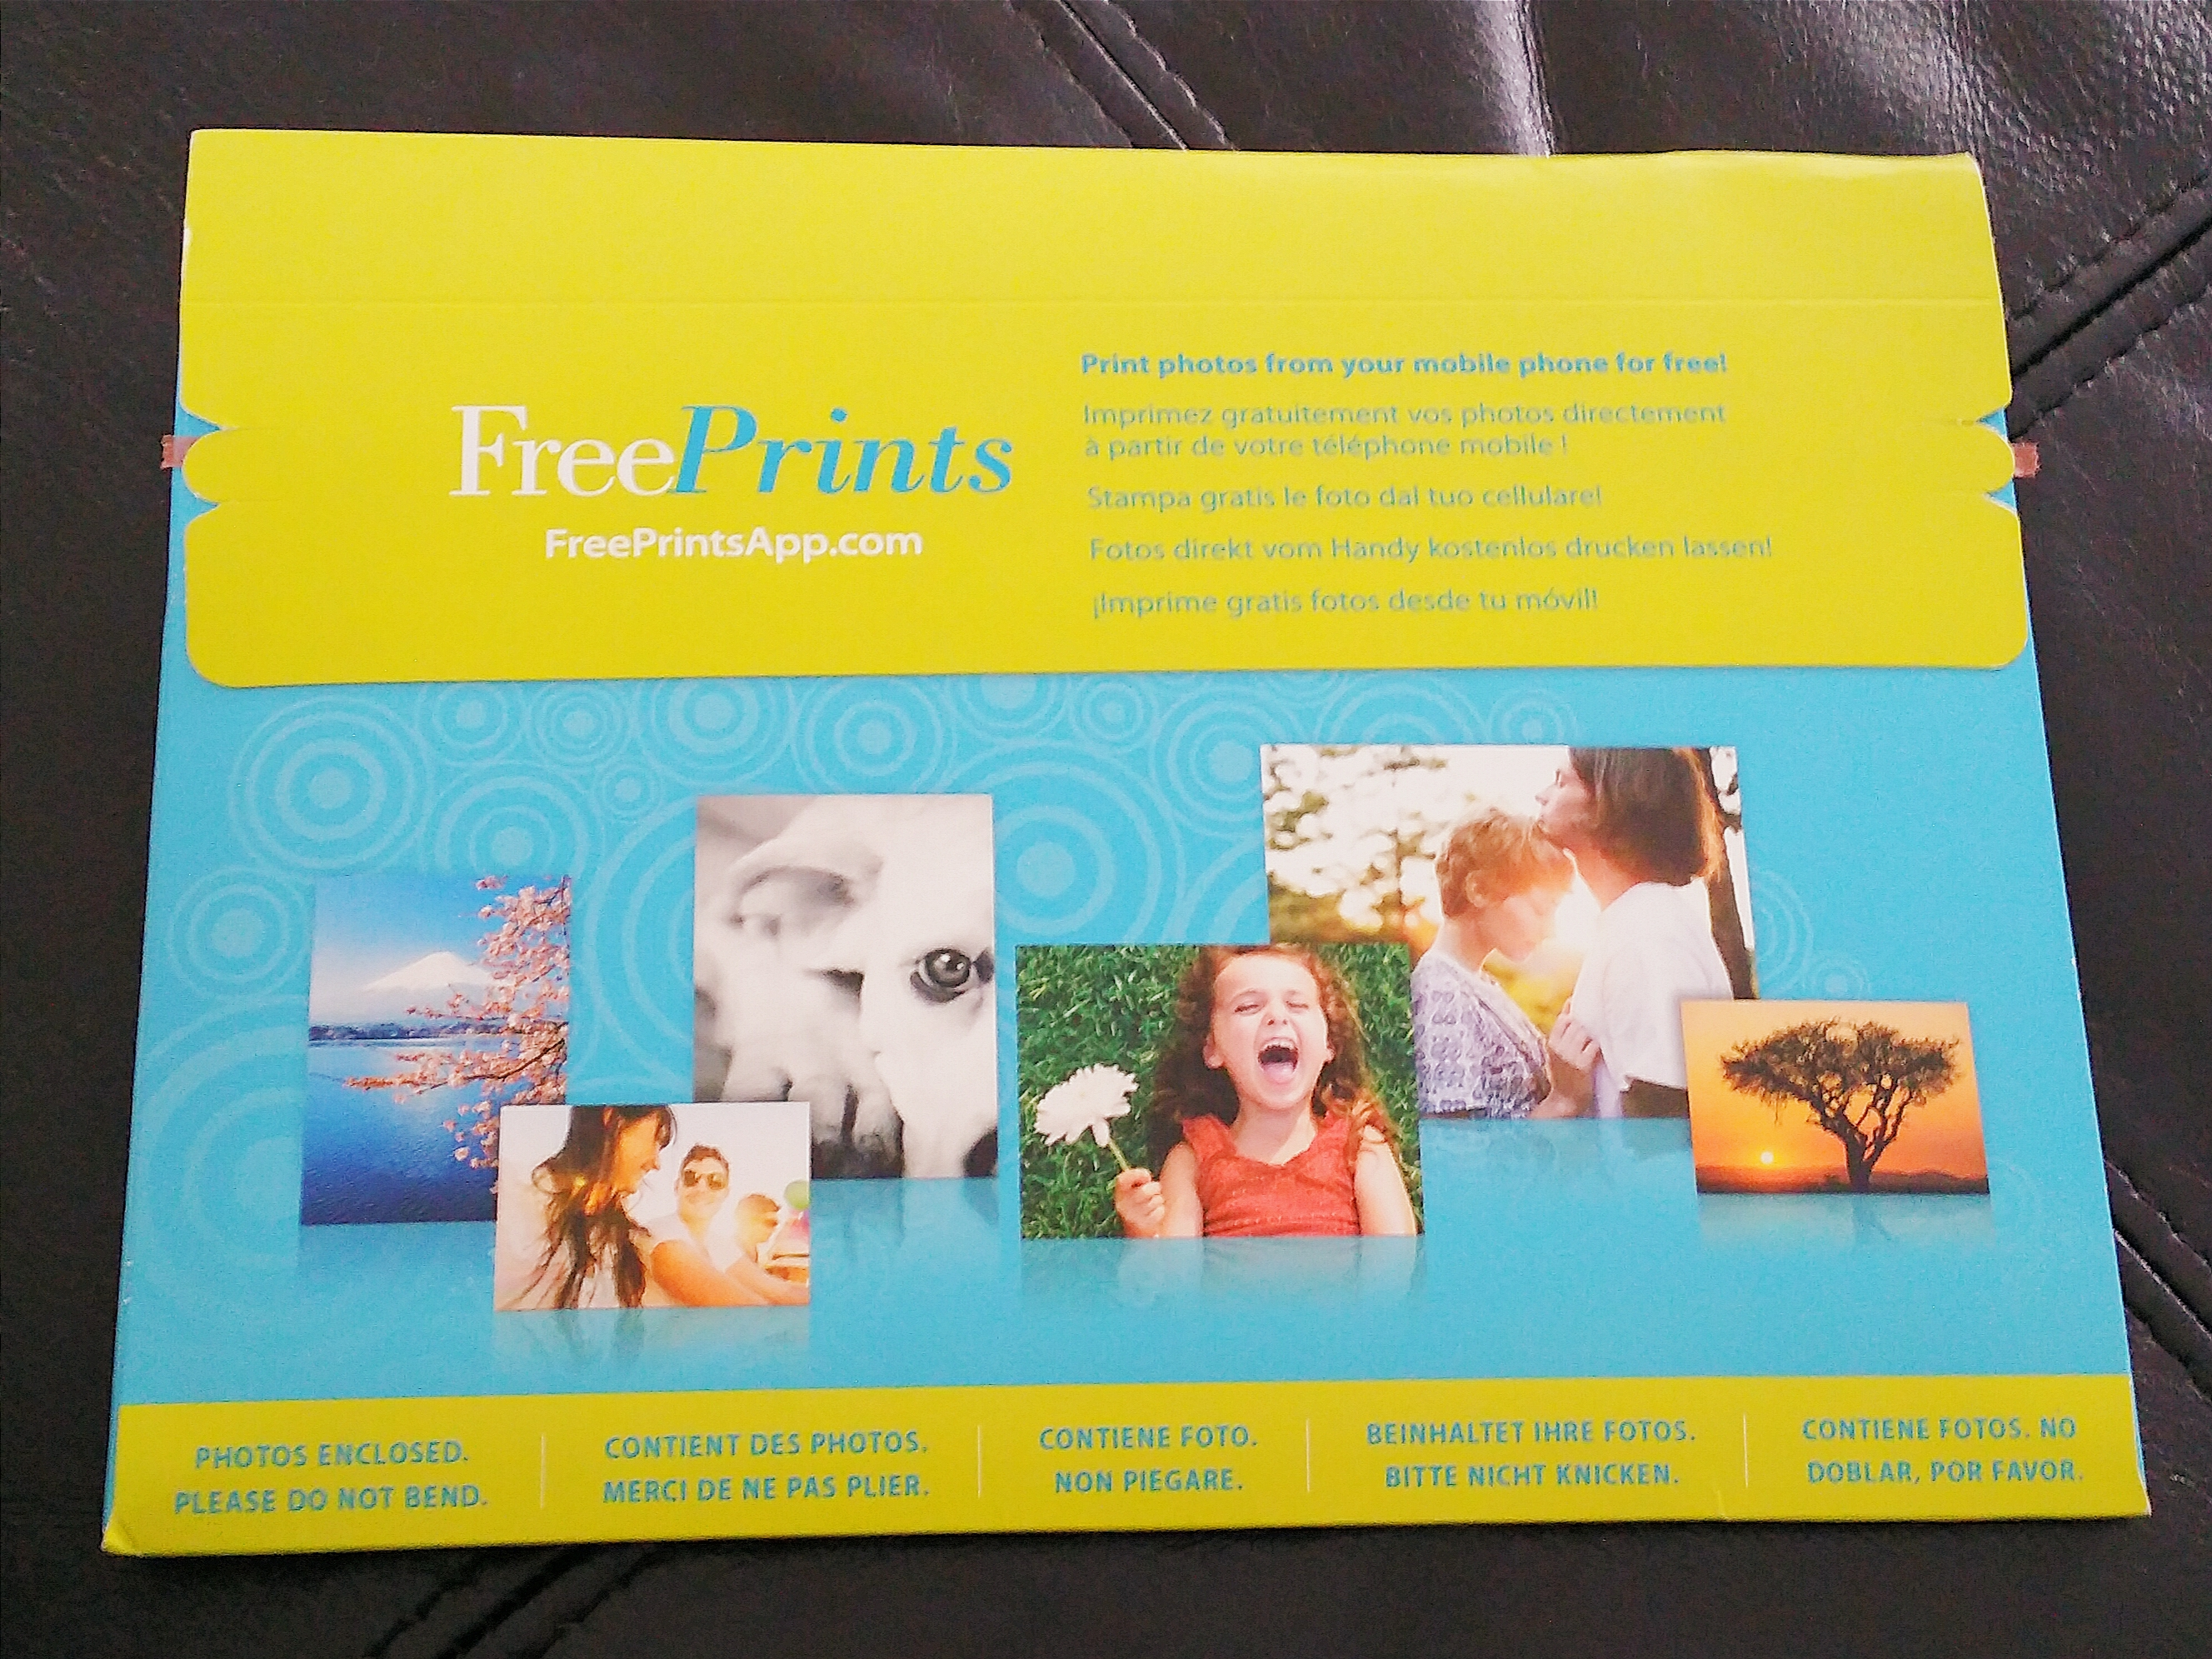 free prints photo printing app review first time mummy